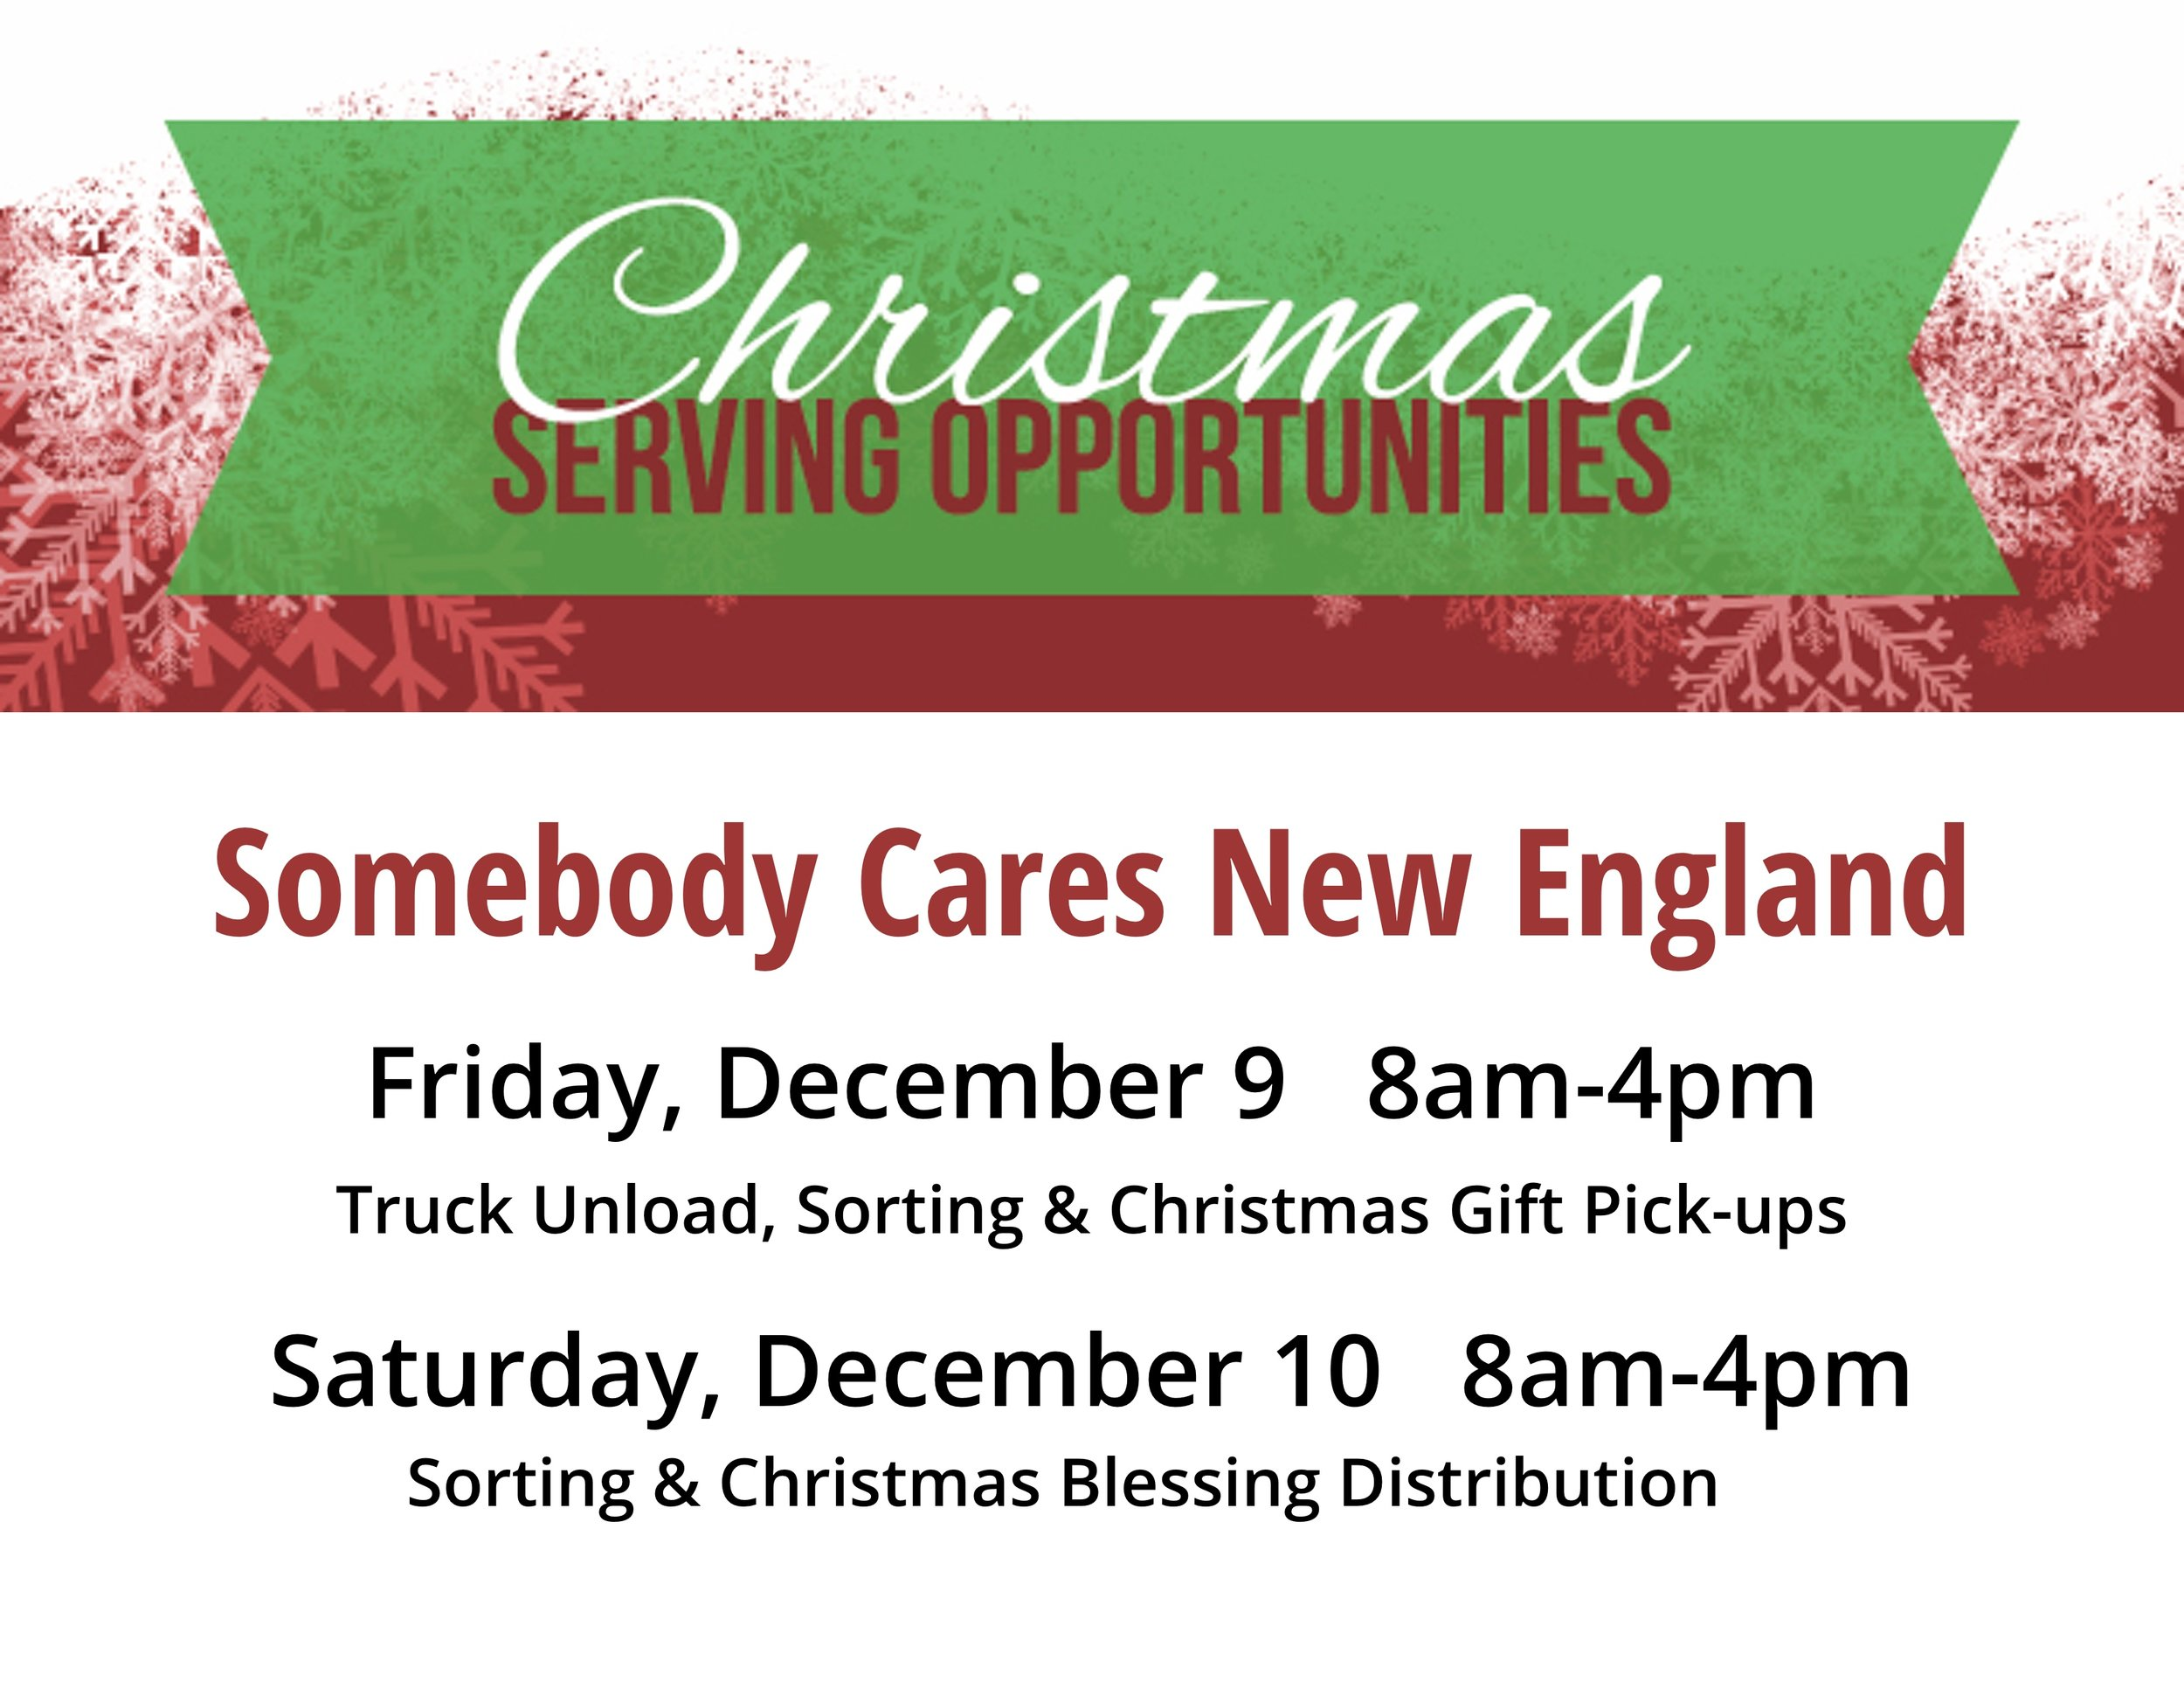 BRCC has teamed up with Somebody Cares New England to provide serving opportunities this Christmas! As SCNE  prepares to launch their HUGE Christmas outreach, they are asking for volunteers to help with all the work that needs to be done. You can sign up for Friday, 9 Dec, or  Saturday, 10 Dec from 8-4. If you can help, please fill out the form on your seat in the sanctuary and put it in the red buckets at the end of service. Any time you can give is greatly appreciated!